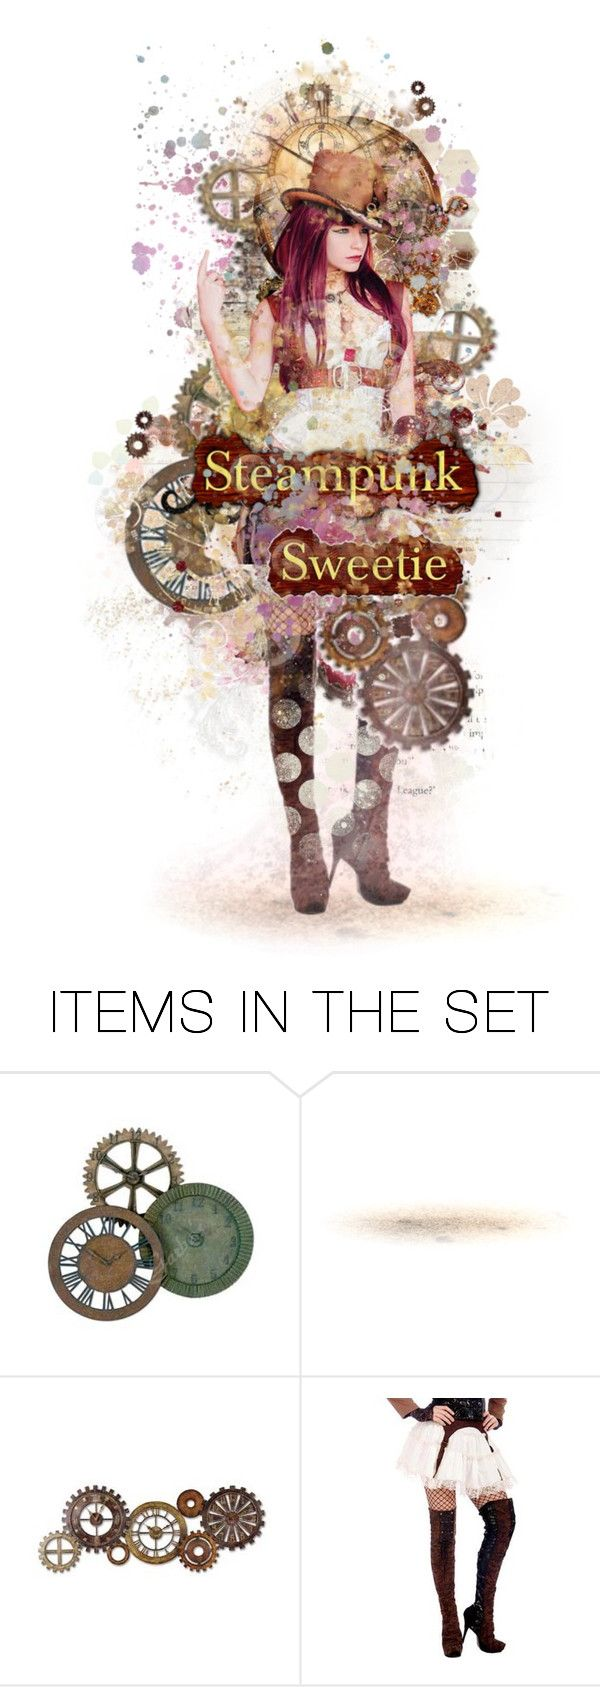 Sweetie, It's Called Steampunk by girlinthebigbox on Polyvore featuring art, doll, Group, fantasy, steampunk and steampunksweetie